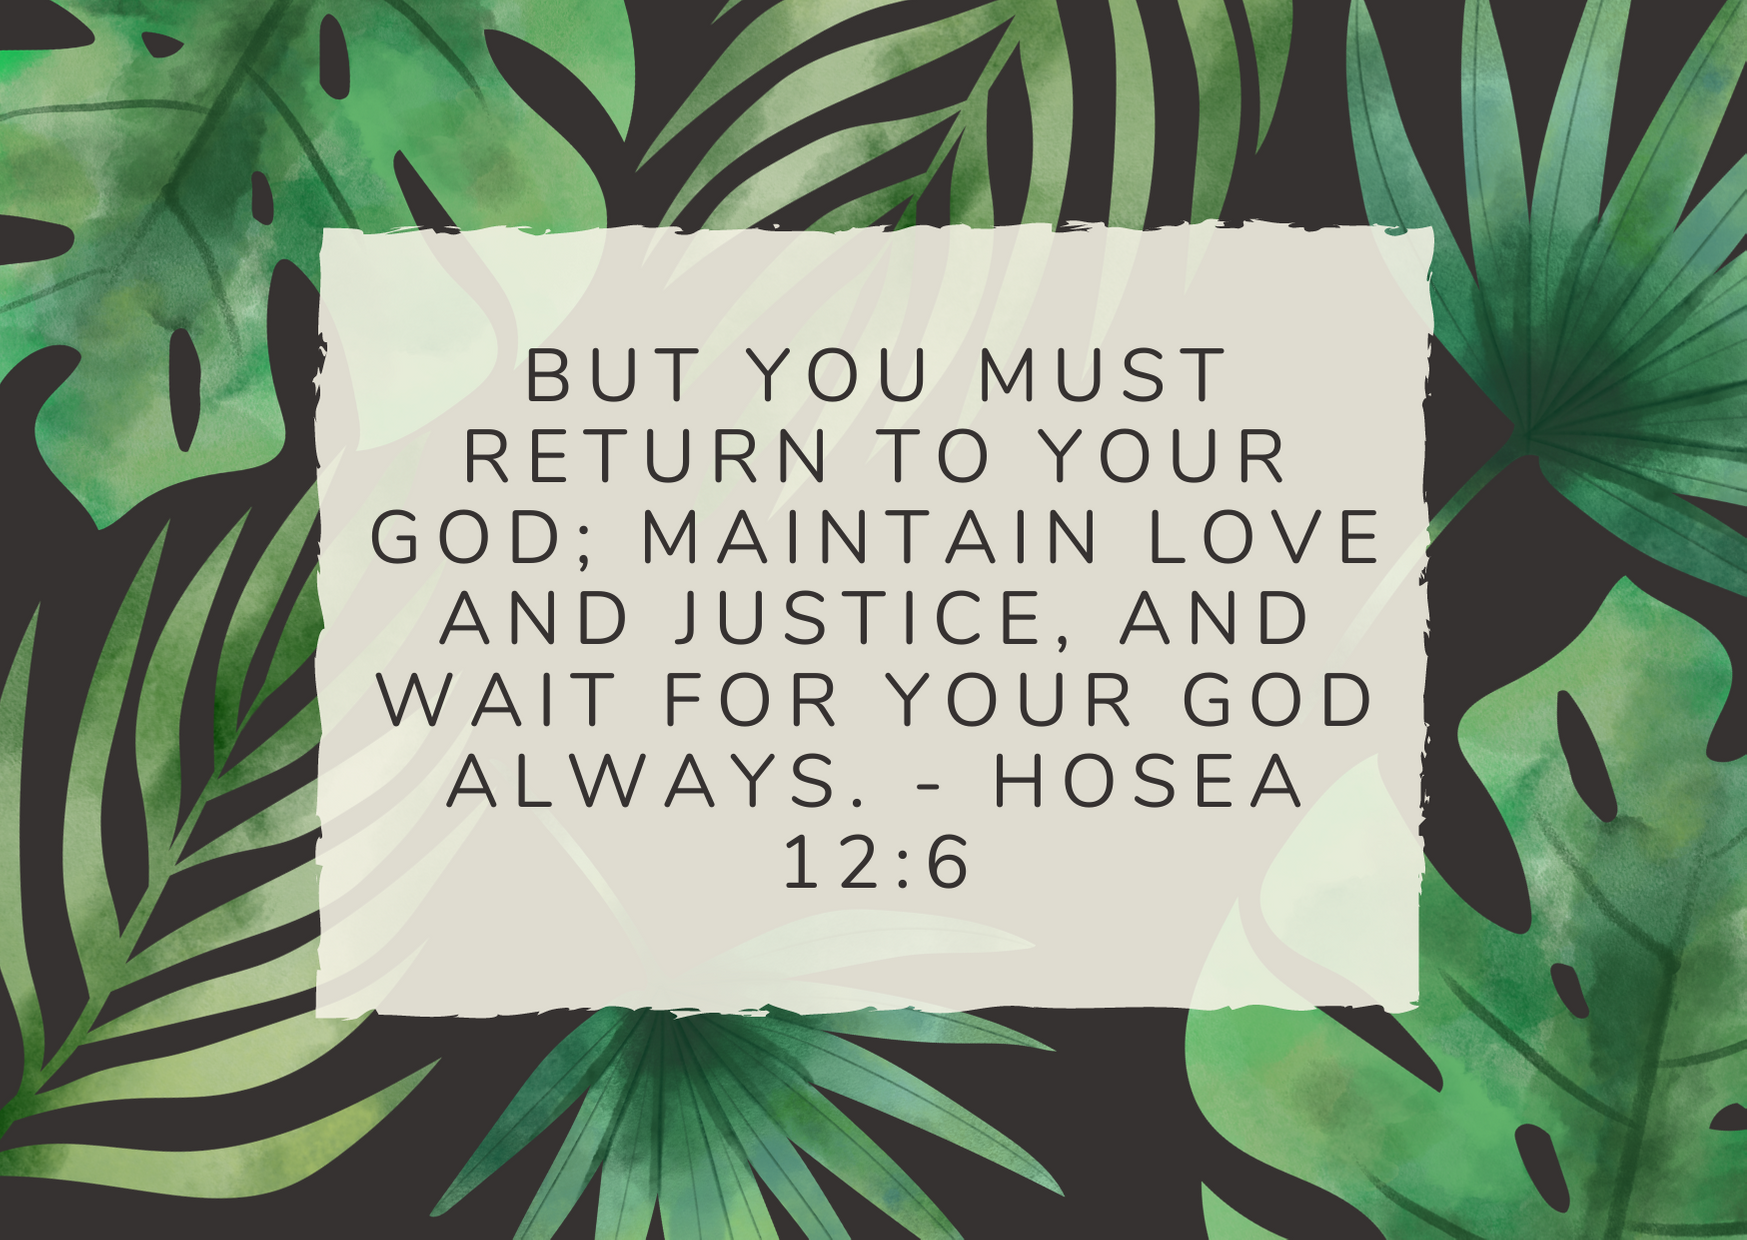 But you must return to your God; maintain love and justice, and wait for your God always. - Hosea 12:6